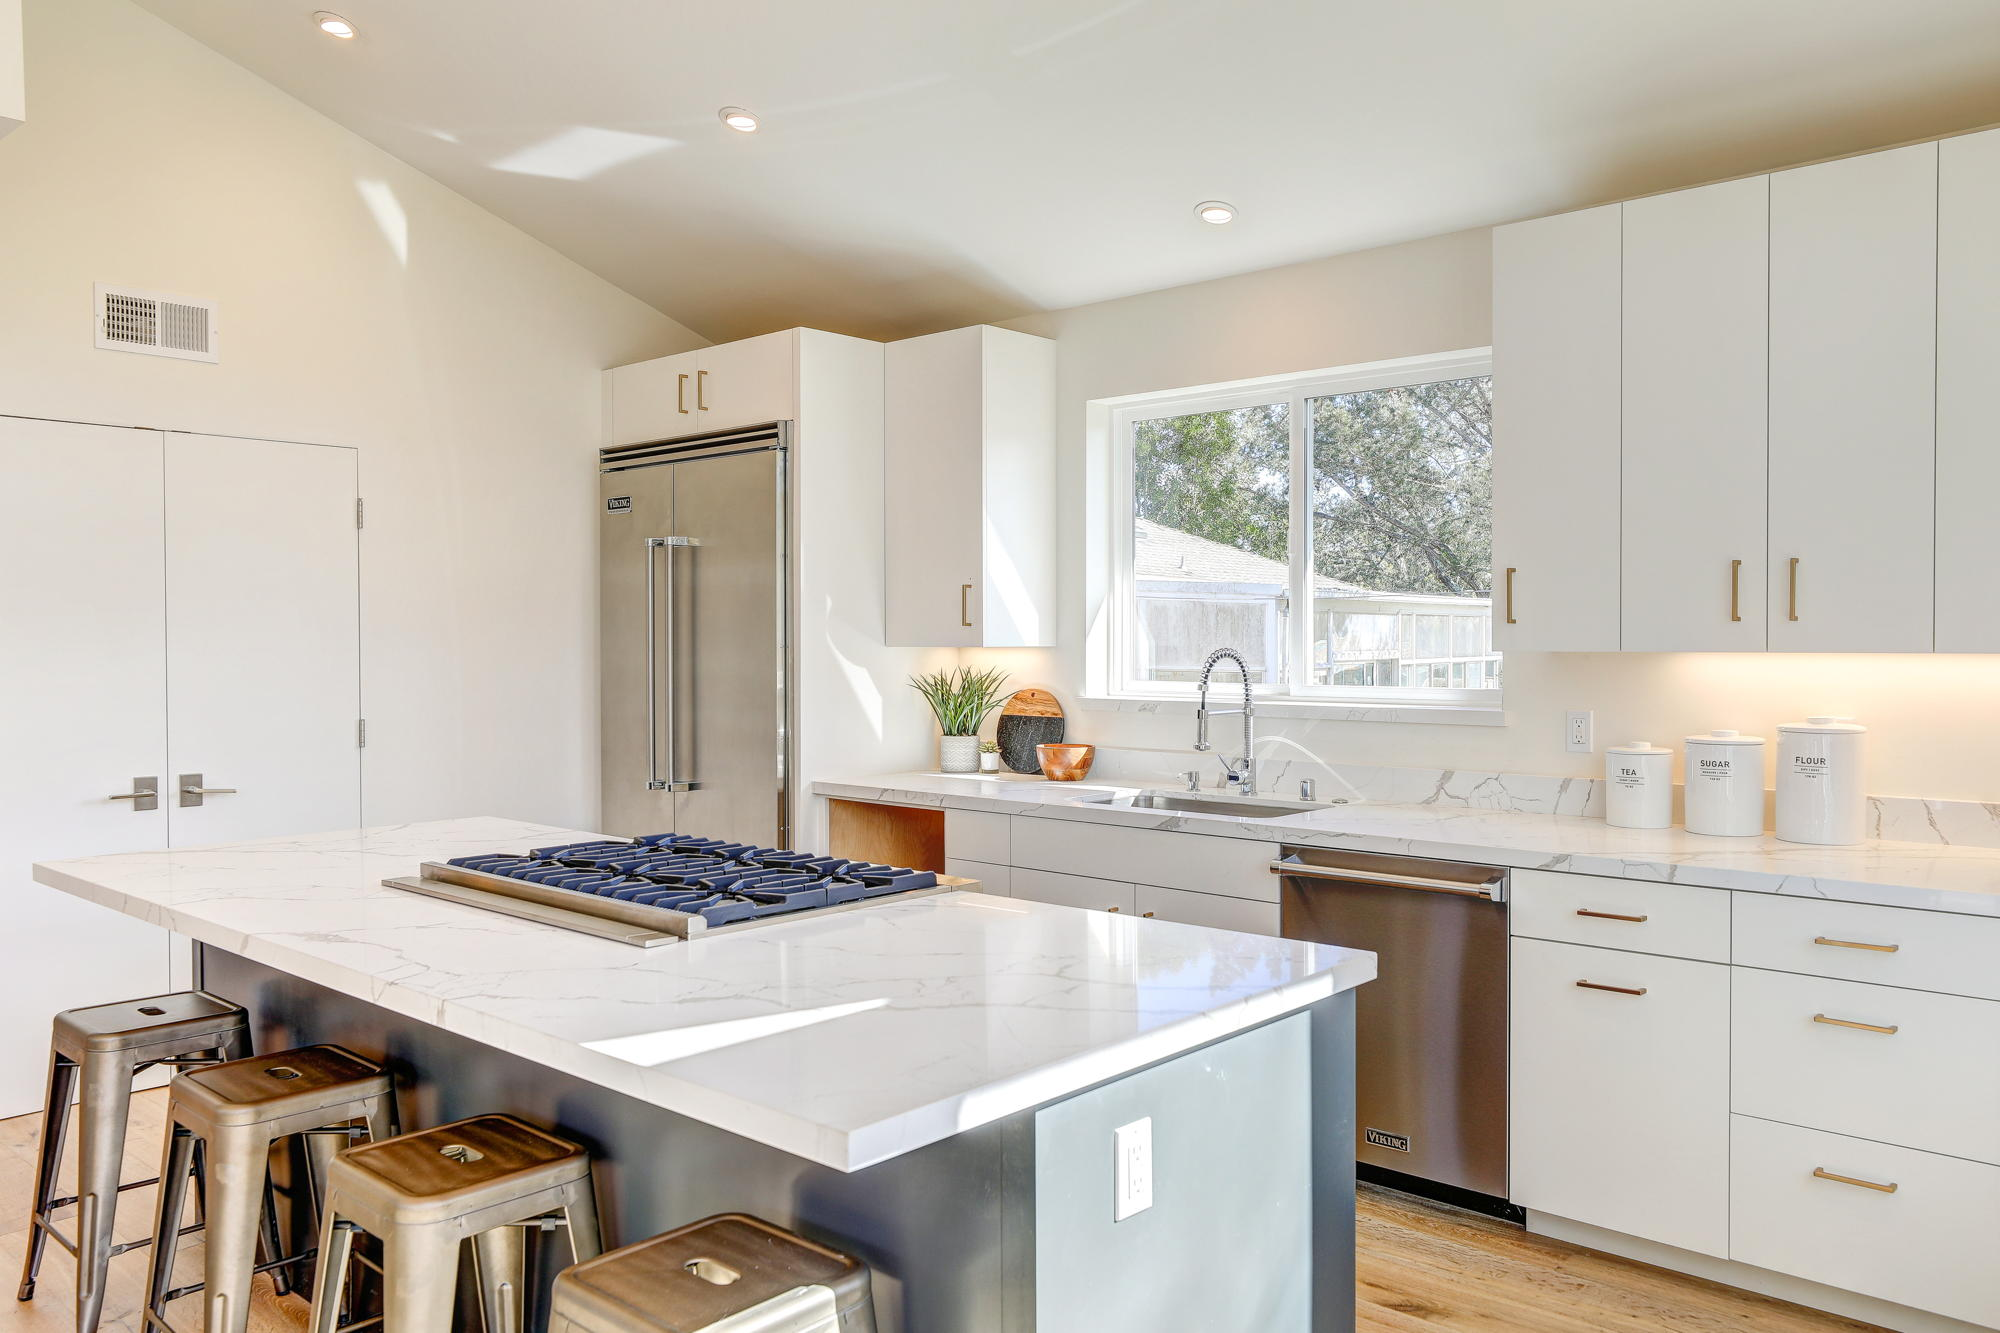 38 Ryan Avenue, Mill Valley - Sycamore Park Homes for sale - 26- Listed by Team Own Marin with Compass Real Estate.jpg